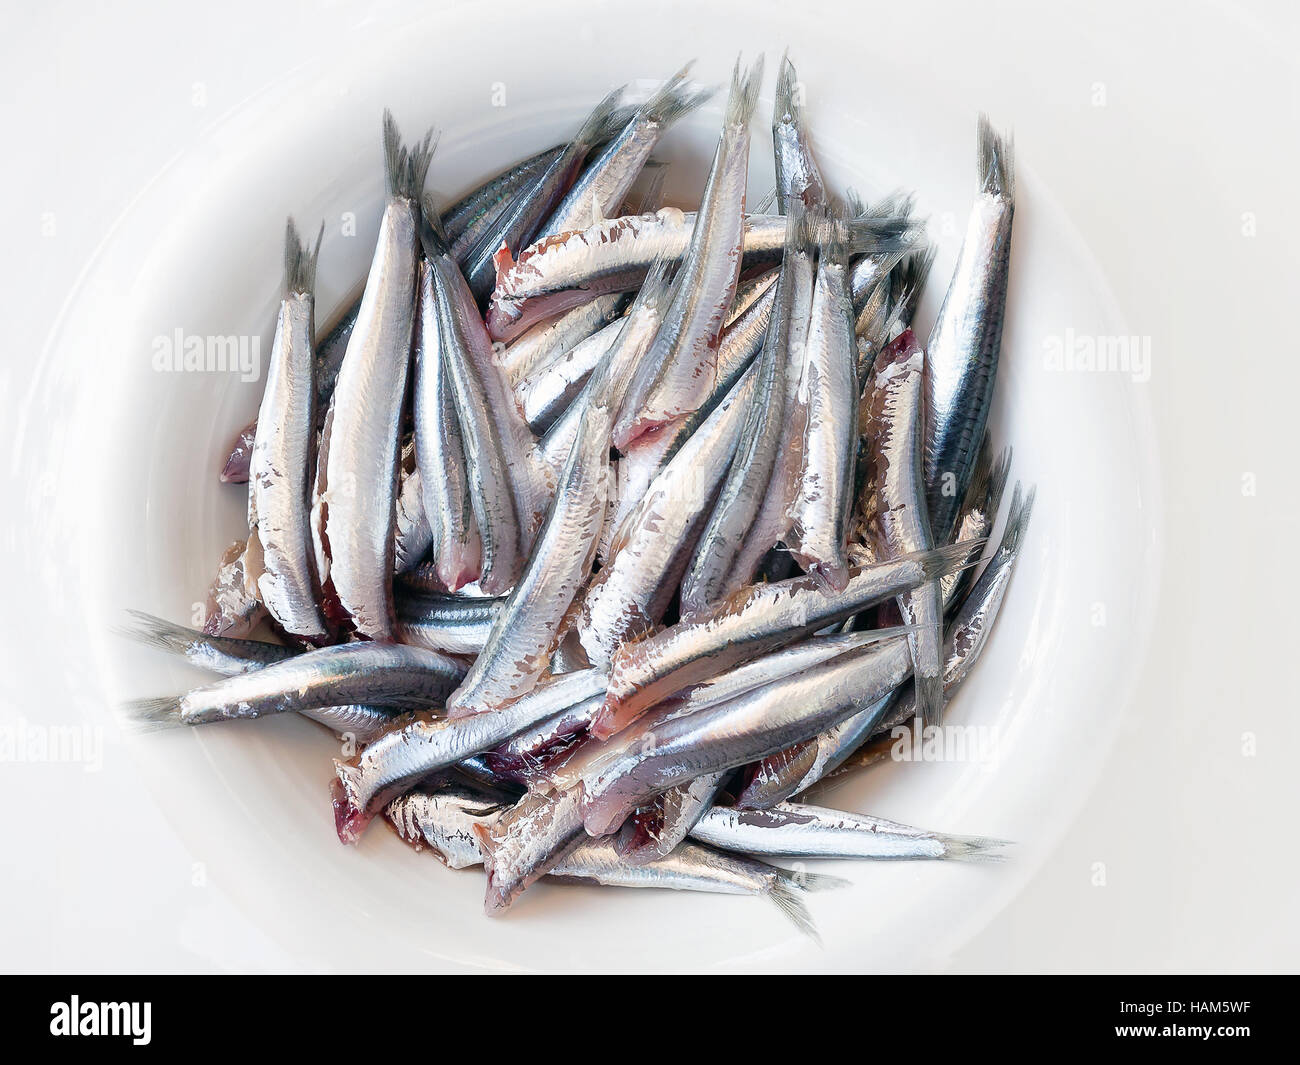 Anchovies headless, cleaned, prepared and ready in the pot, before cooking. - Stock Image